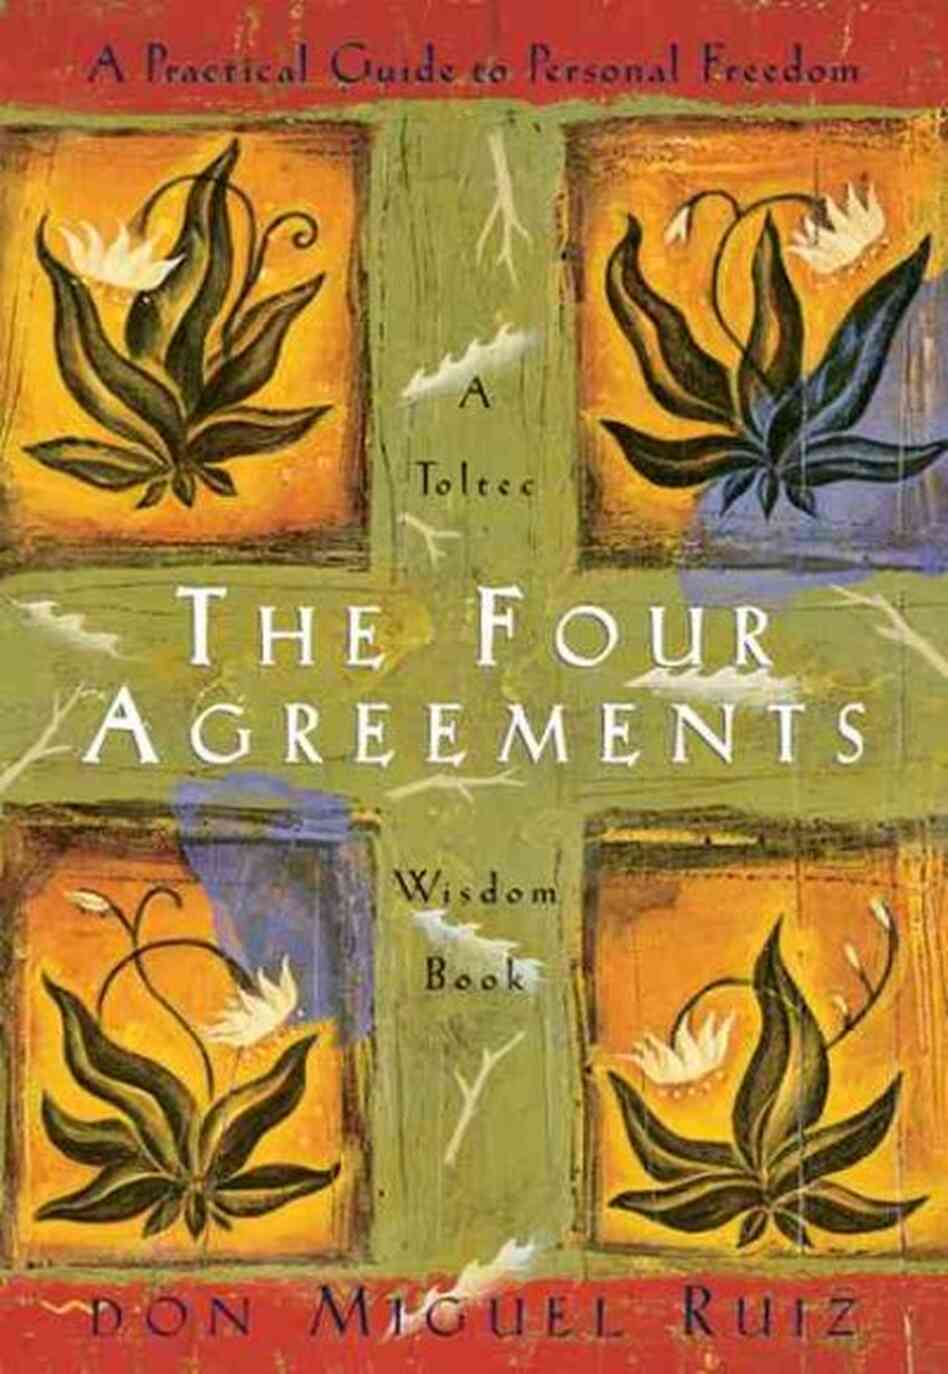 The Four Agreements NPR